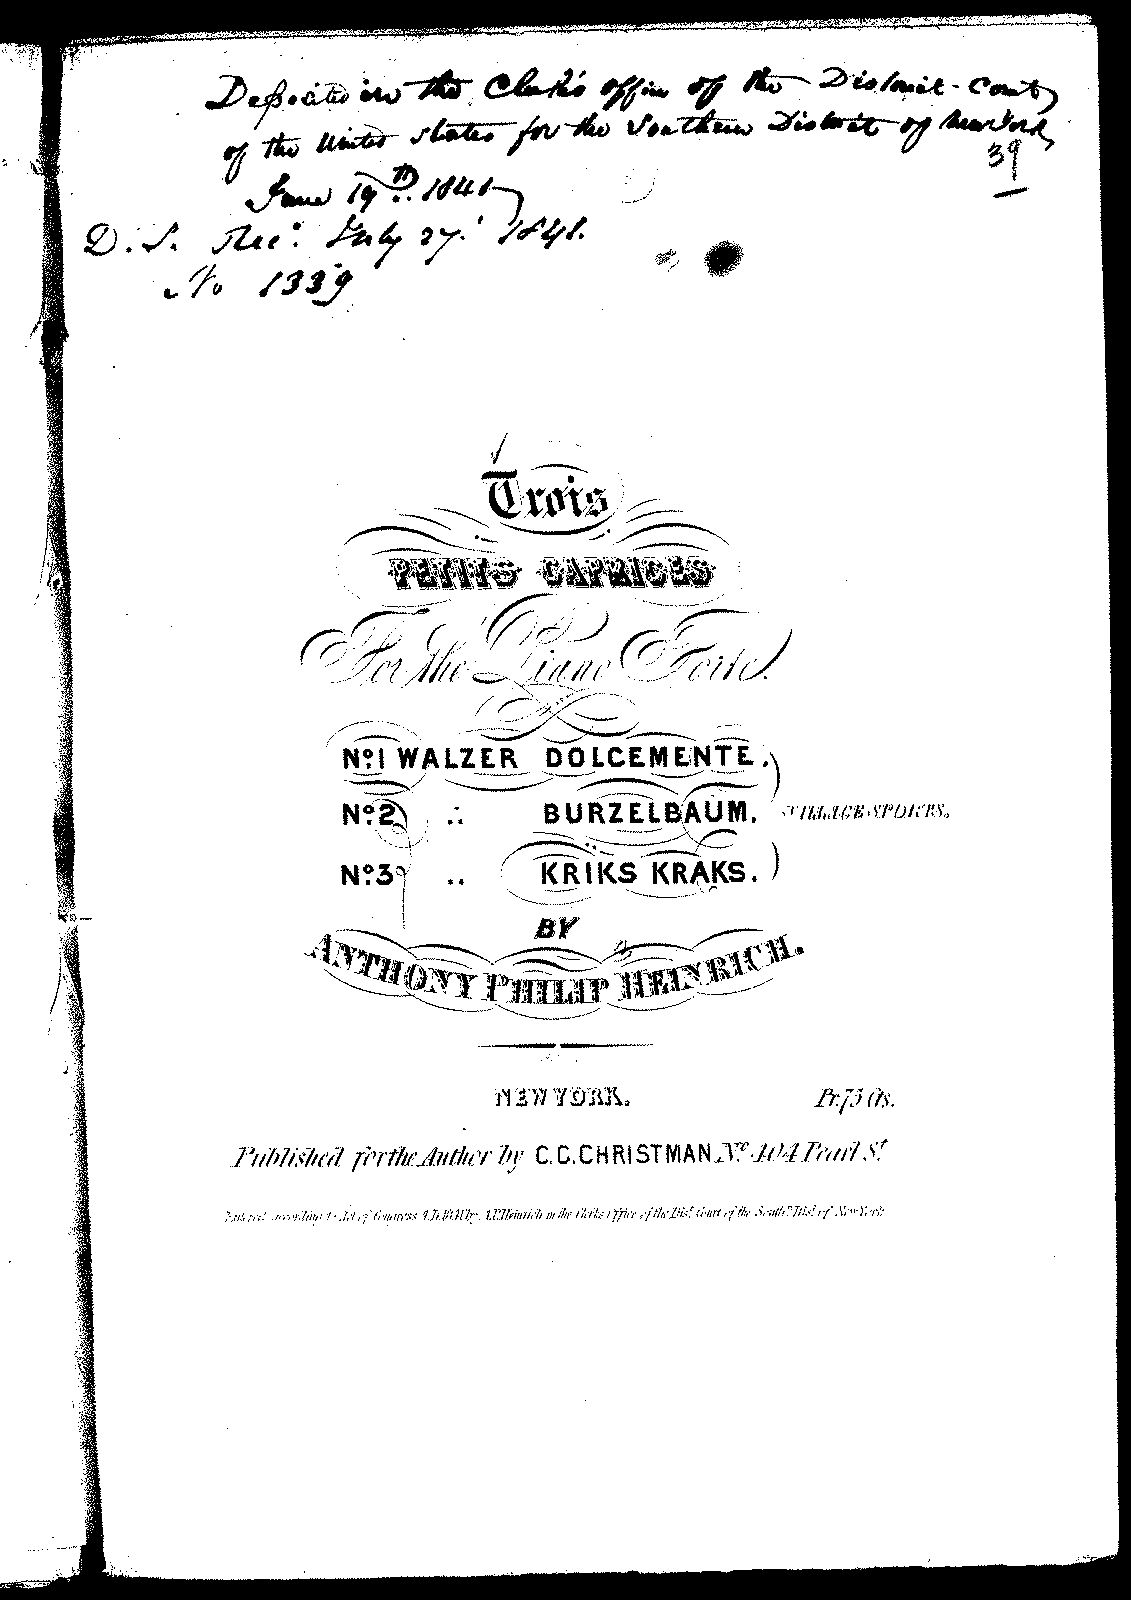 Heinrich - Three Petits Caprices (Walzer).pdf